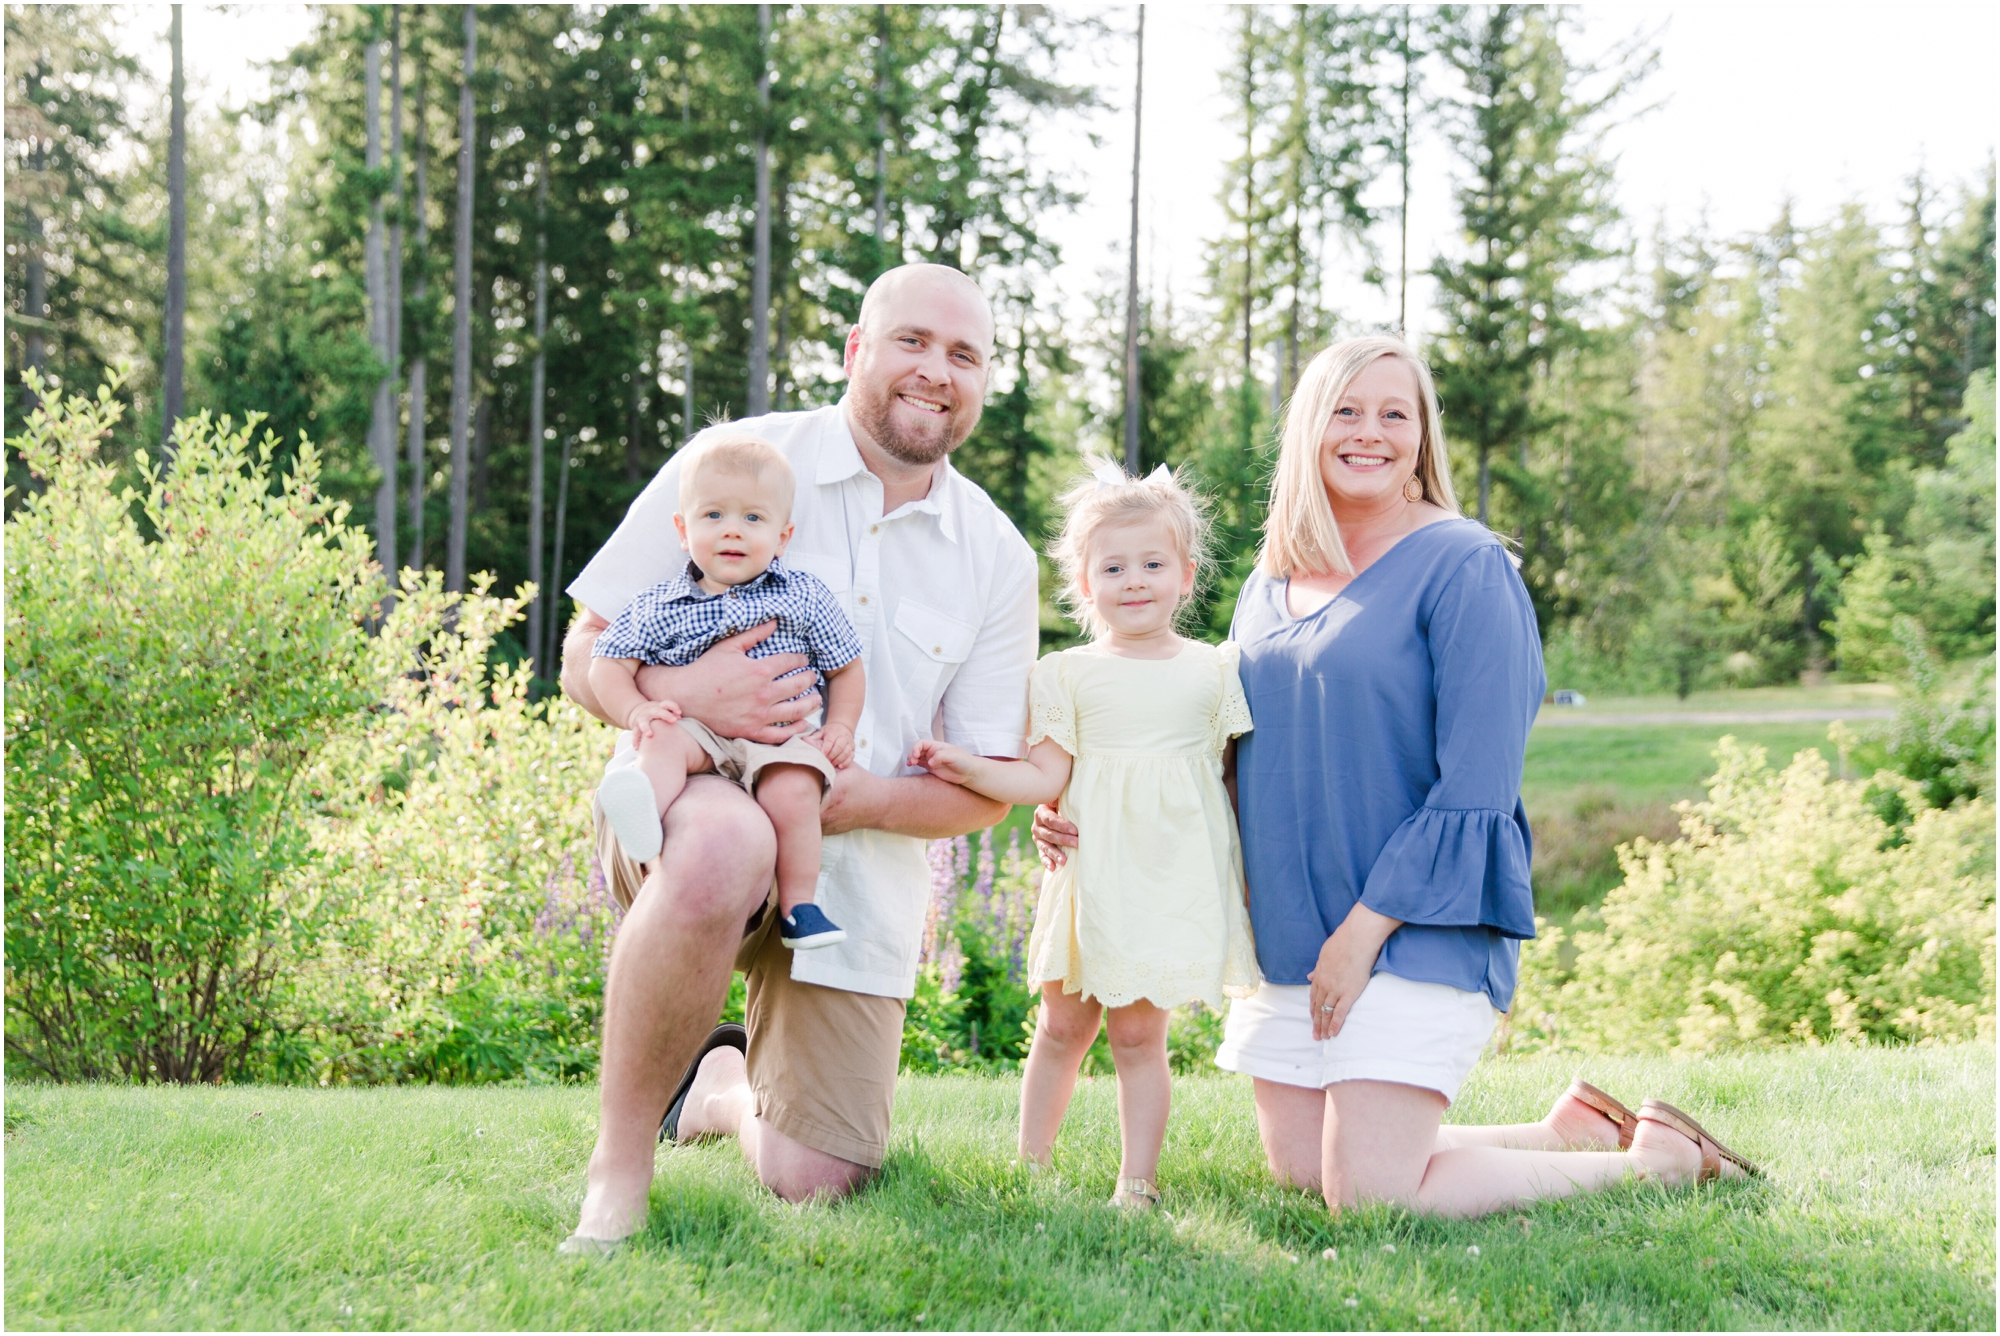 Family and one year old portraits by Briana Calderon Photography based in the Greater Seattle & Tacoma, WA_0664.jpg